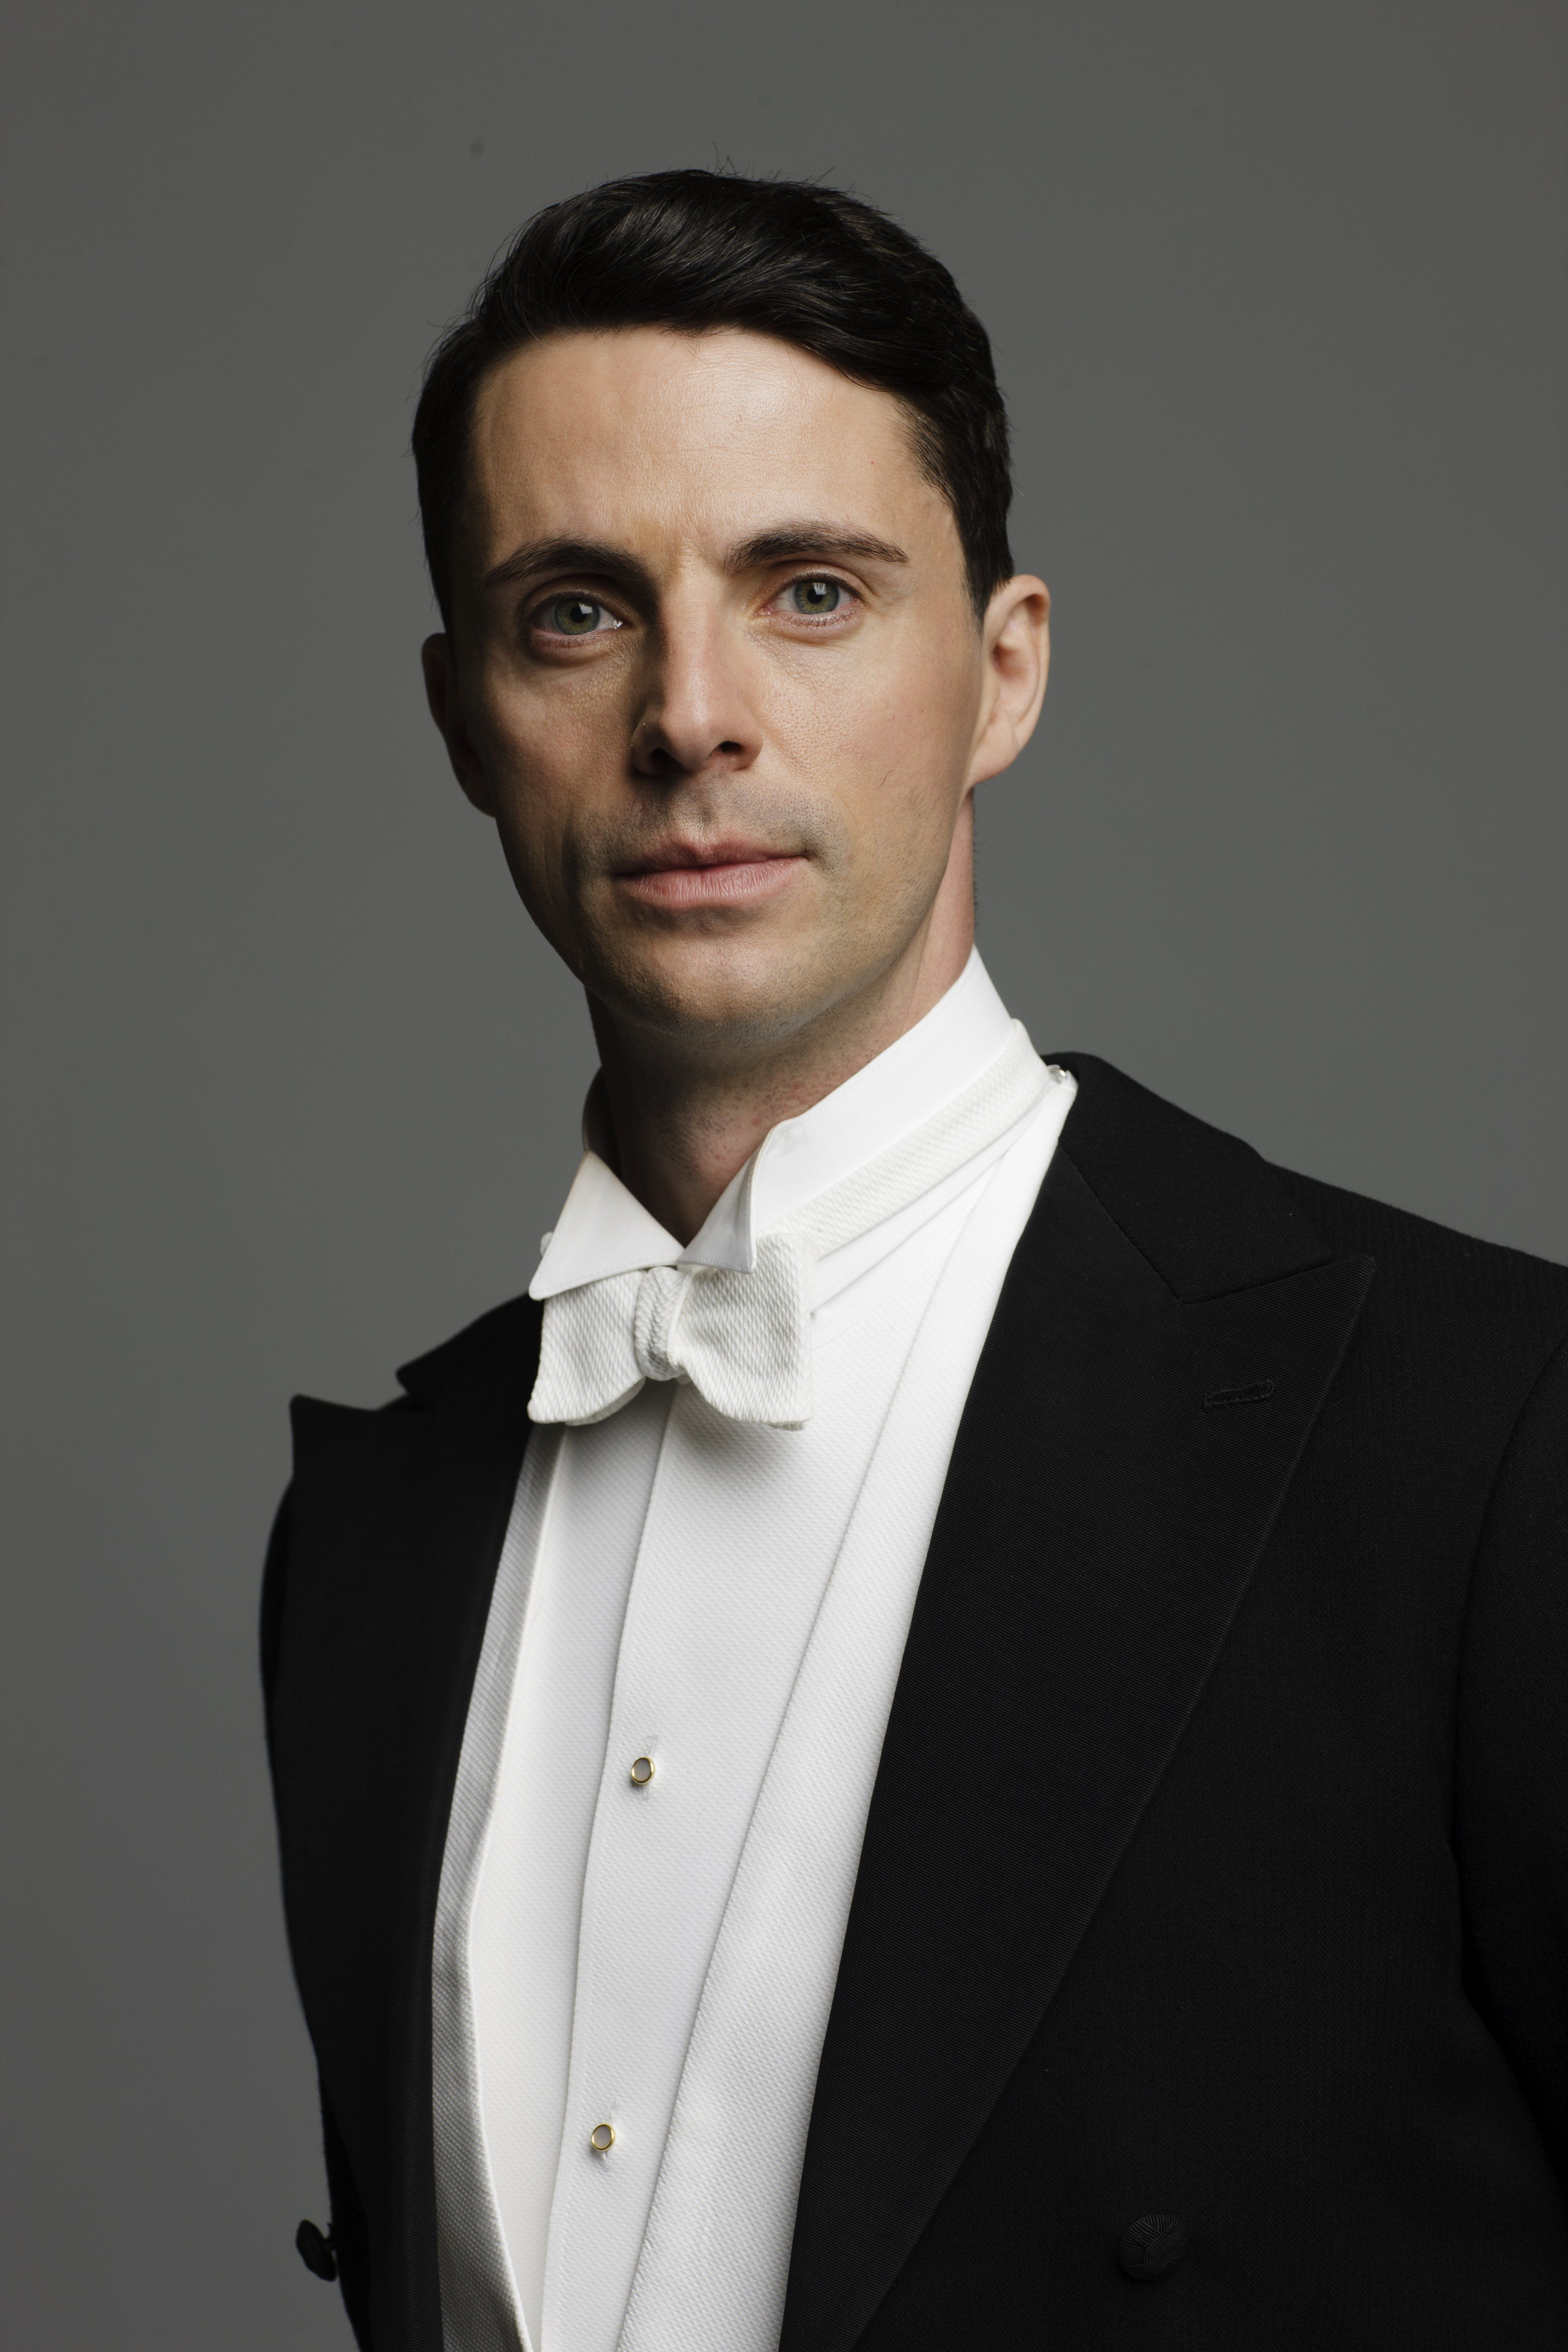 Discussion on this topic: Edythe Chapman, matthew-goode-born-1978/